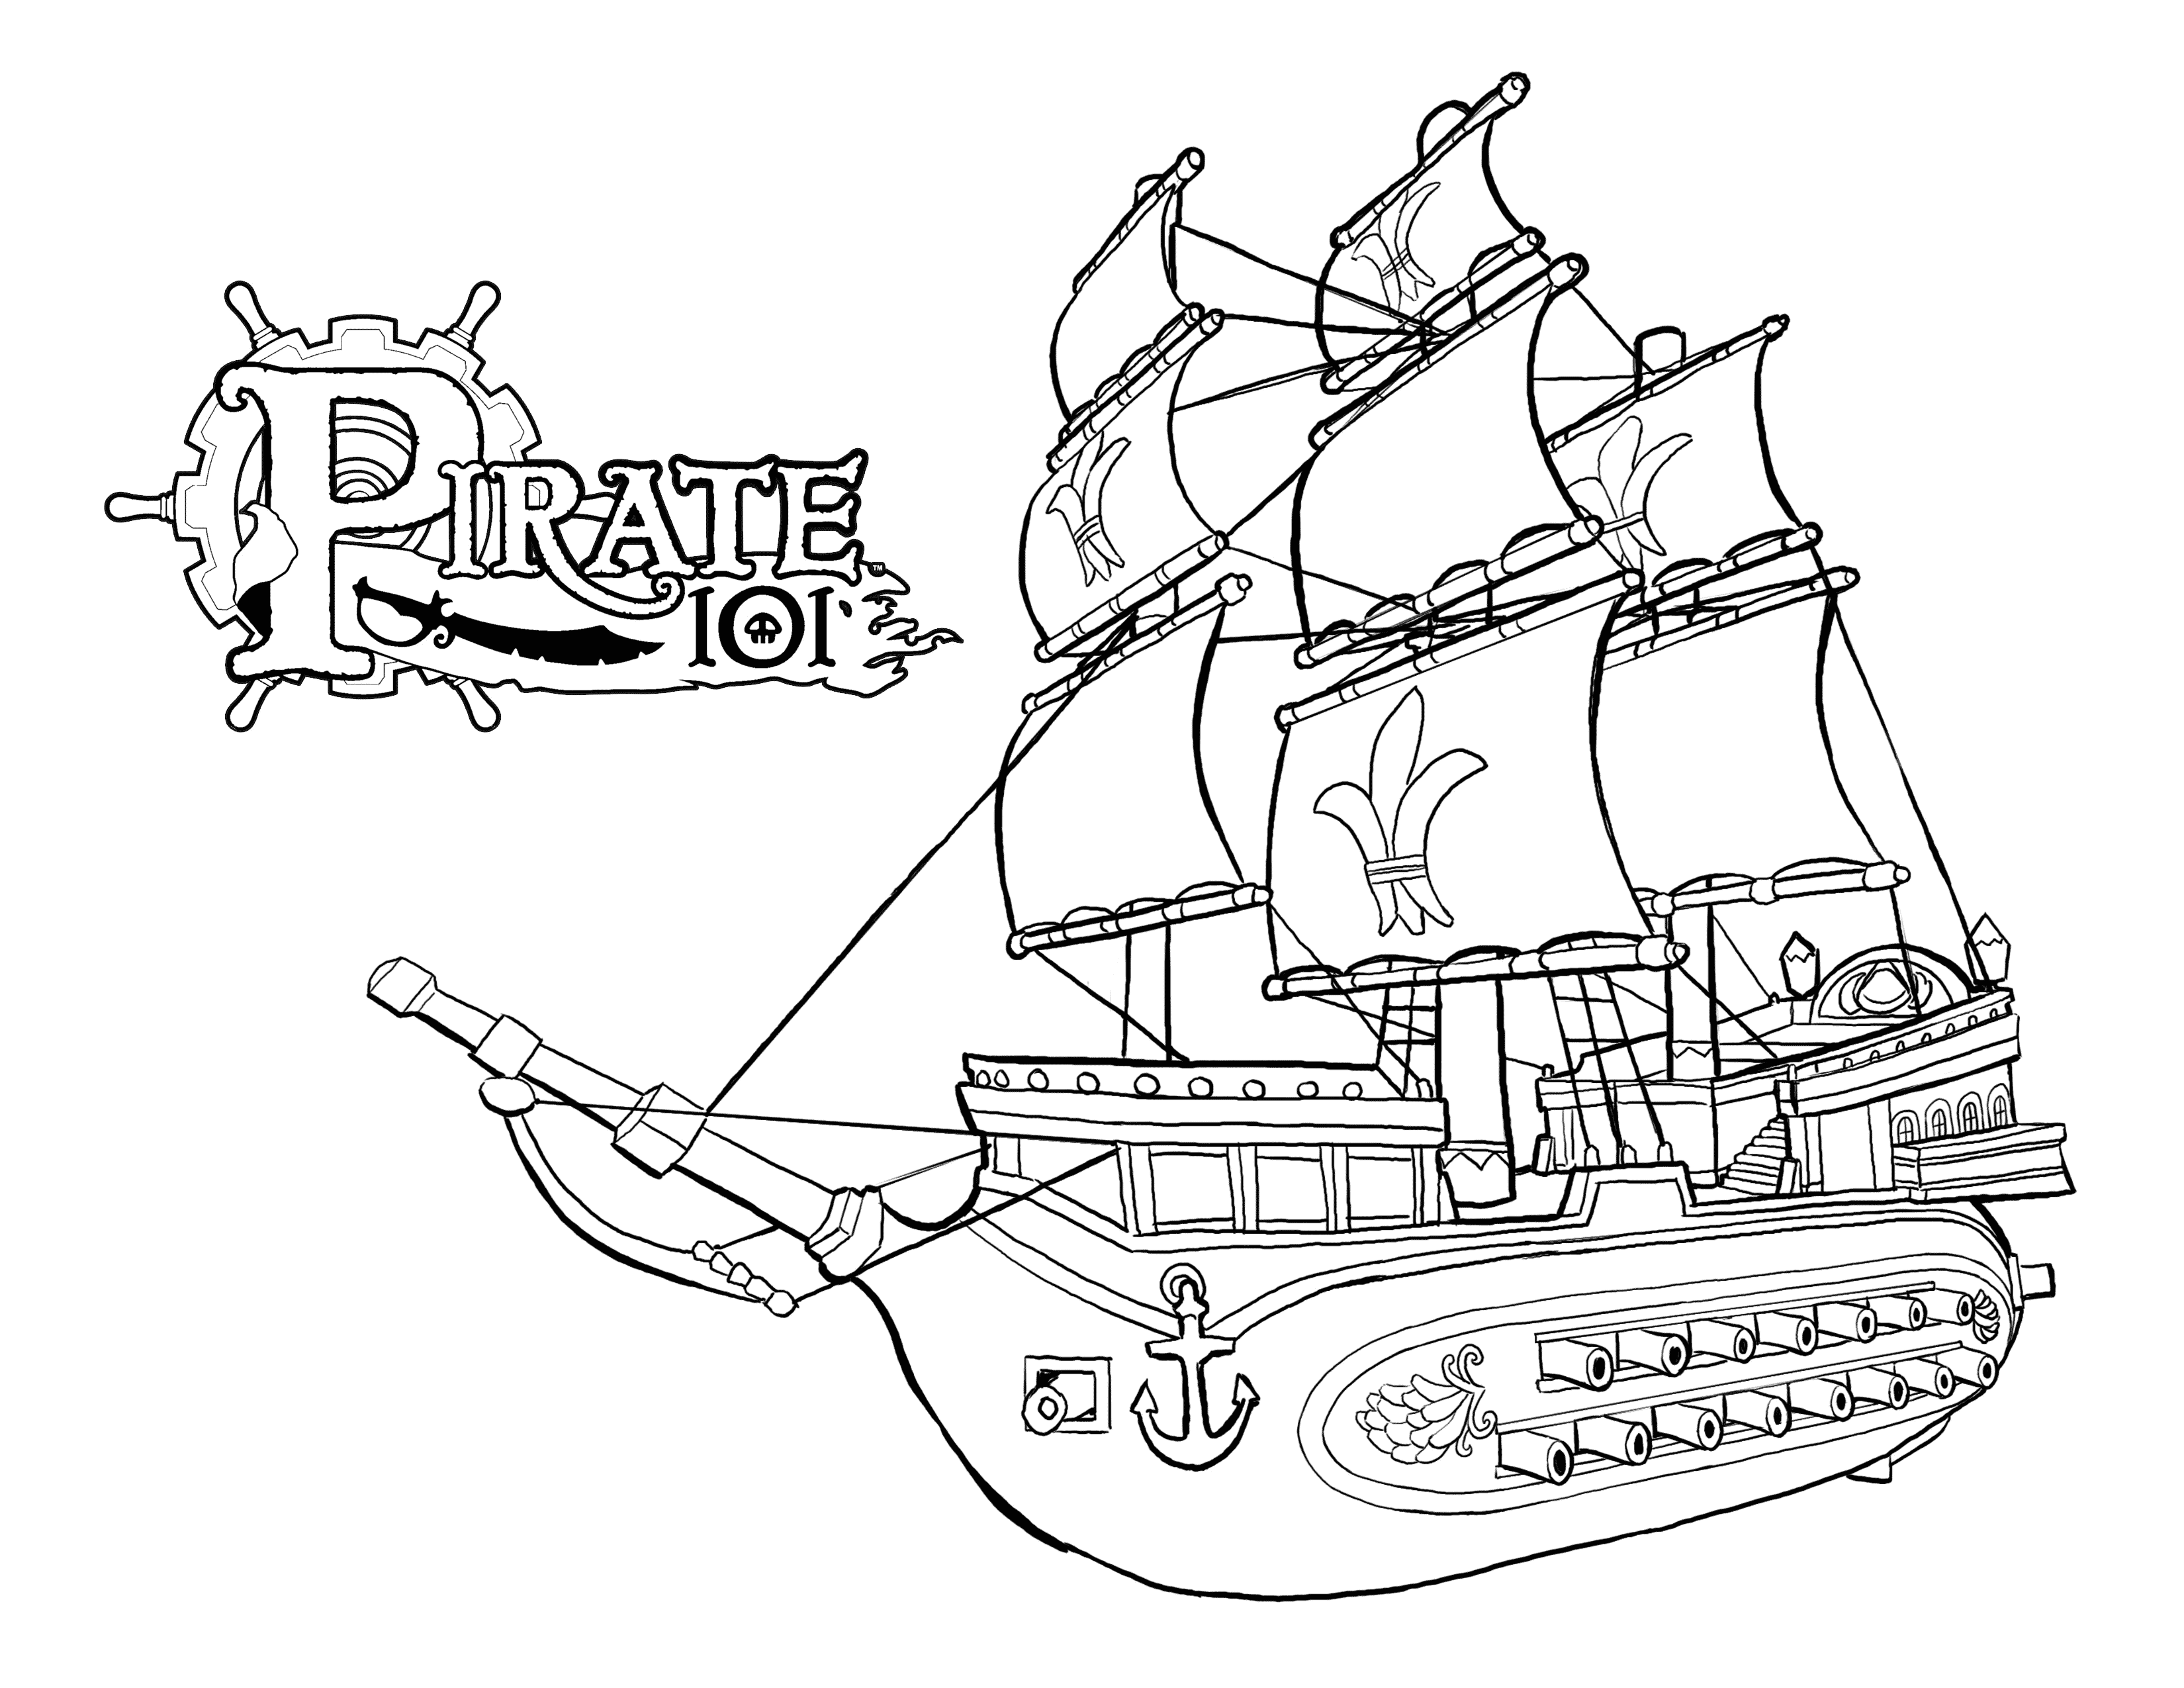 monquistan ship pirate coloring pages 355 - Pirate Coloring Pages